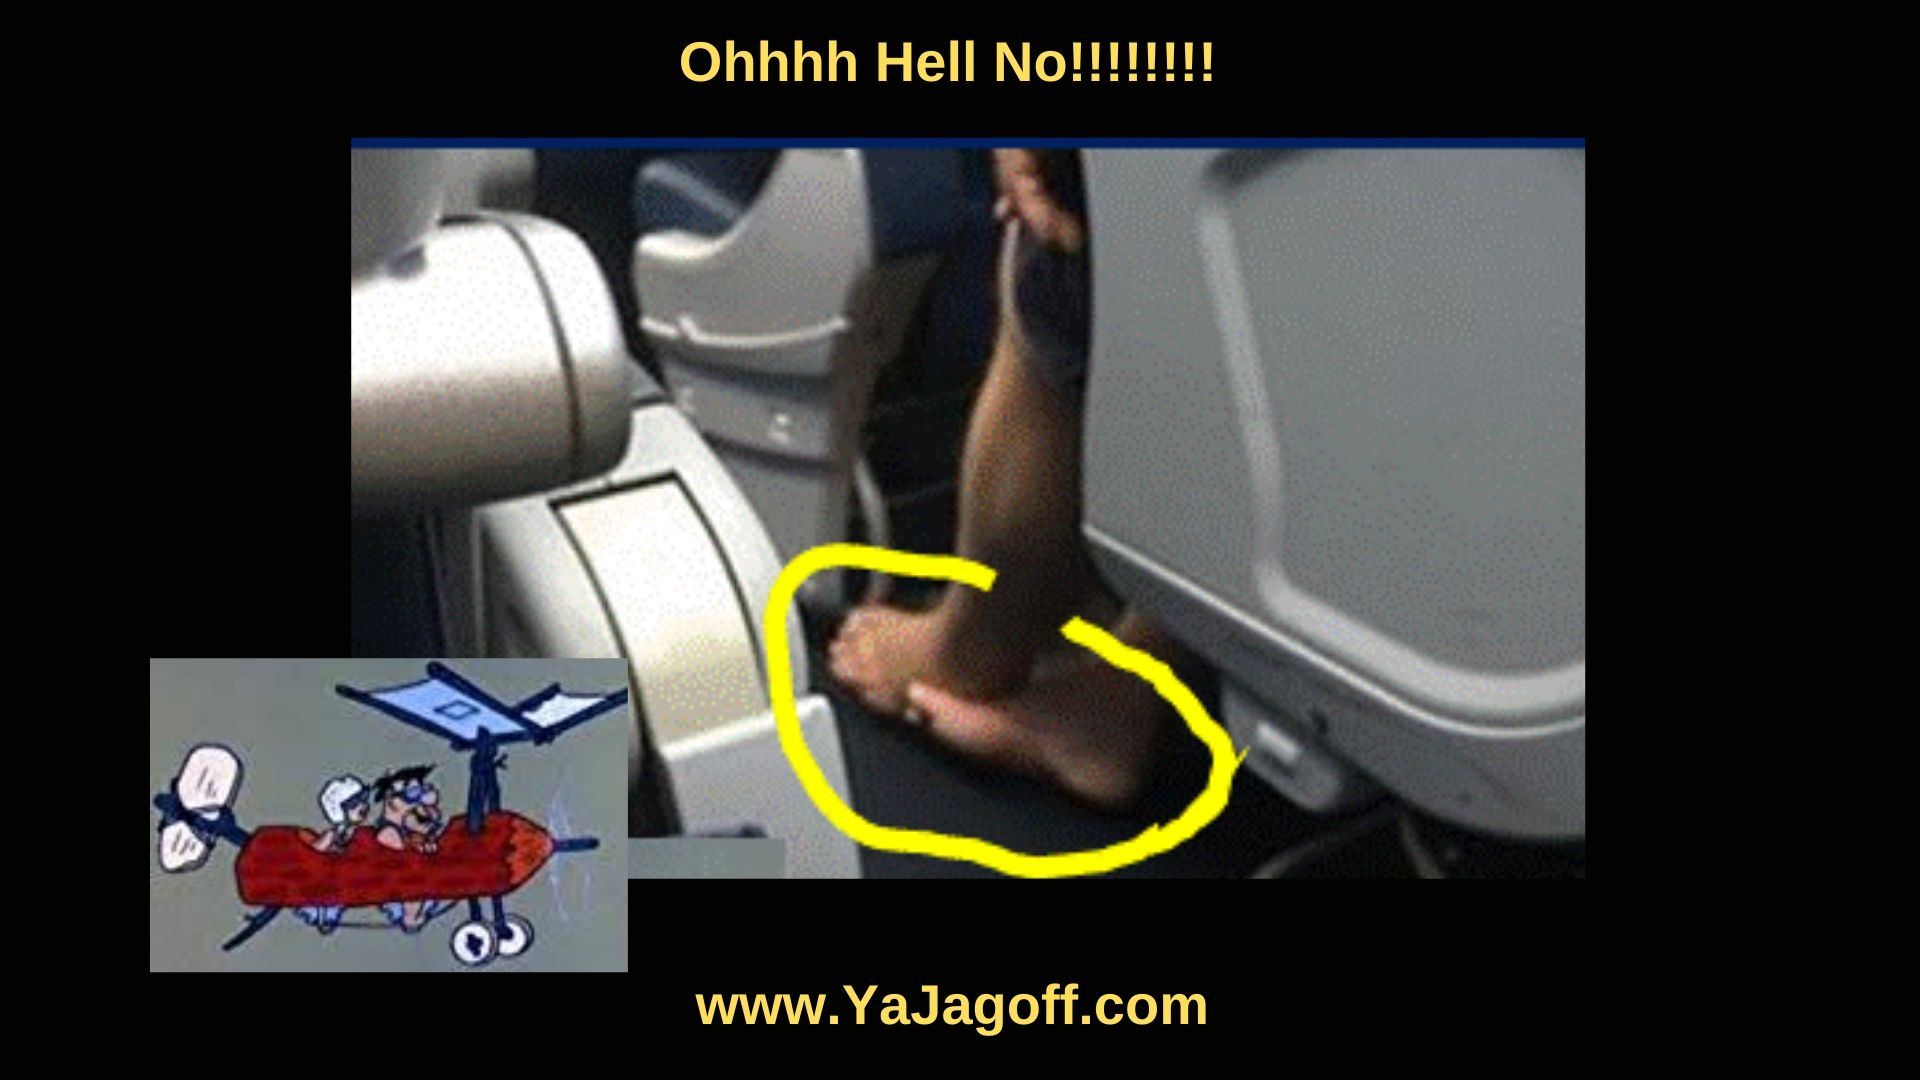 YaJagoff Podcast and Blog, Feet on a plane